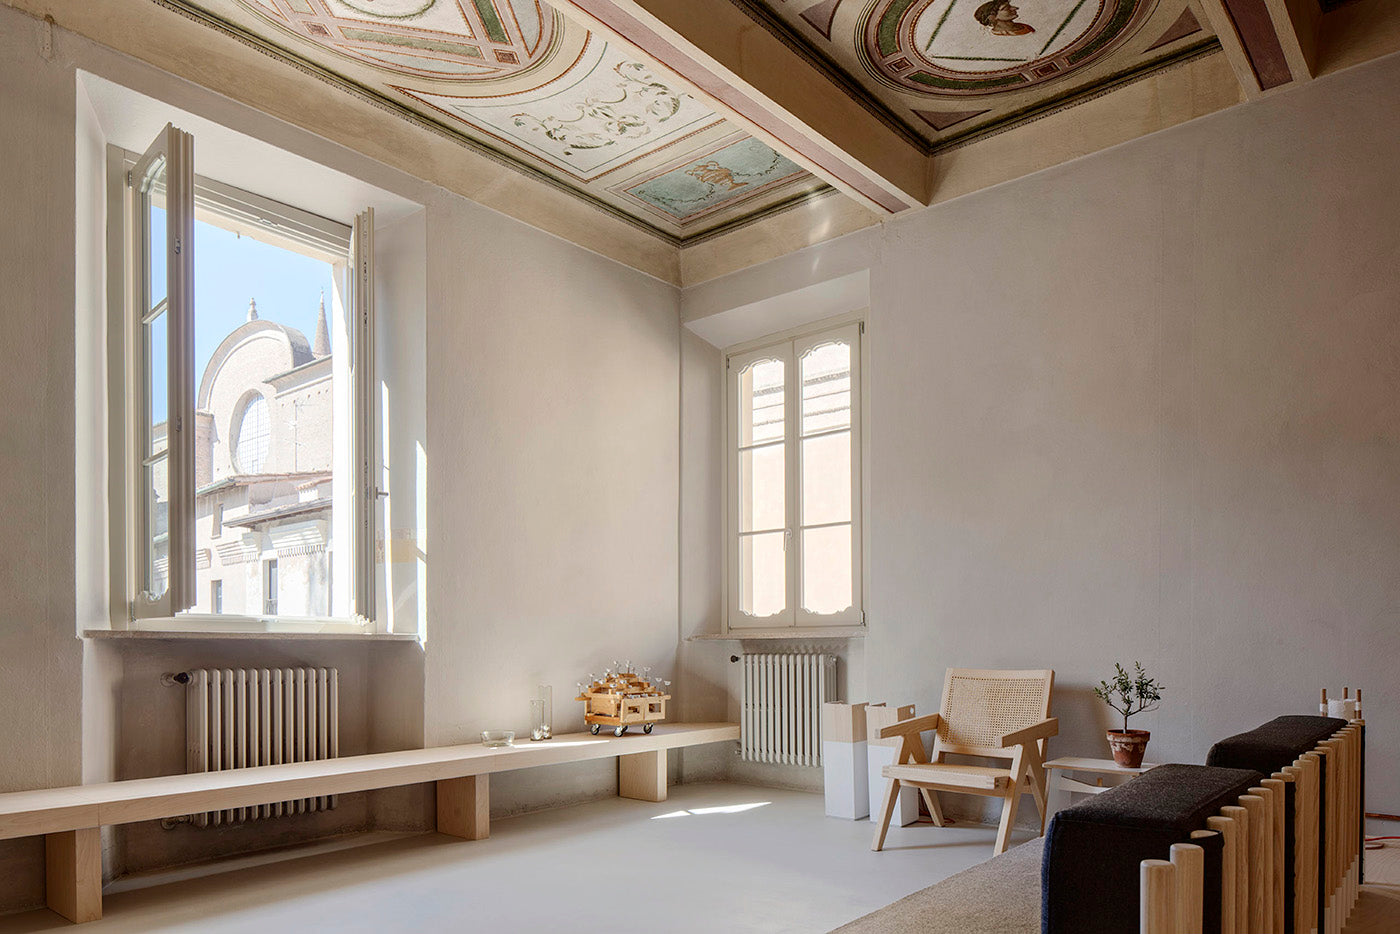 Archiplan in Mantua, Italy, photographed by Davide Galli for The Home Upgrade